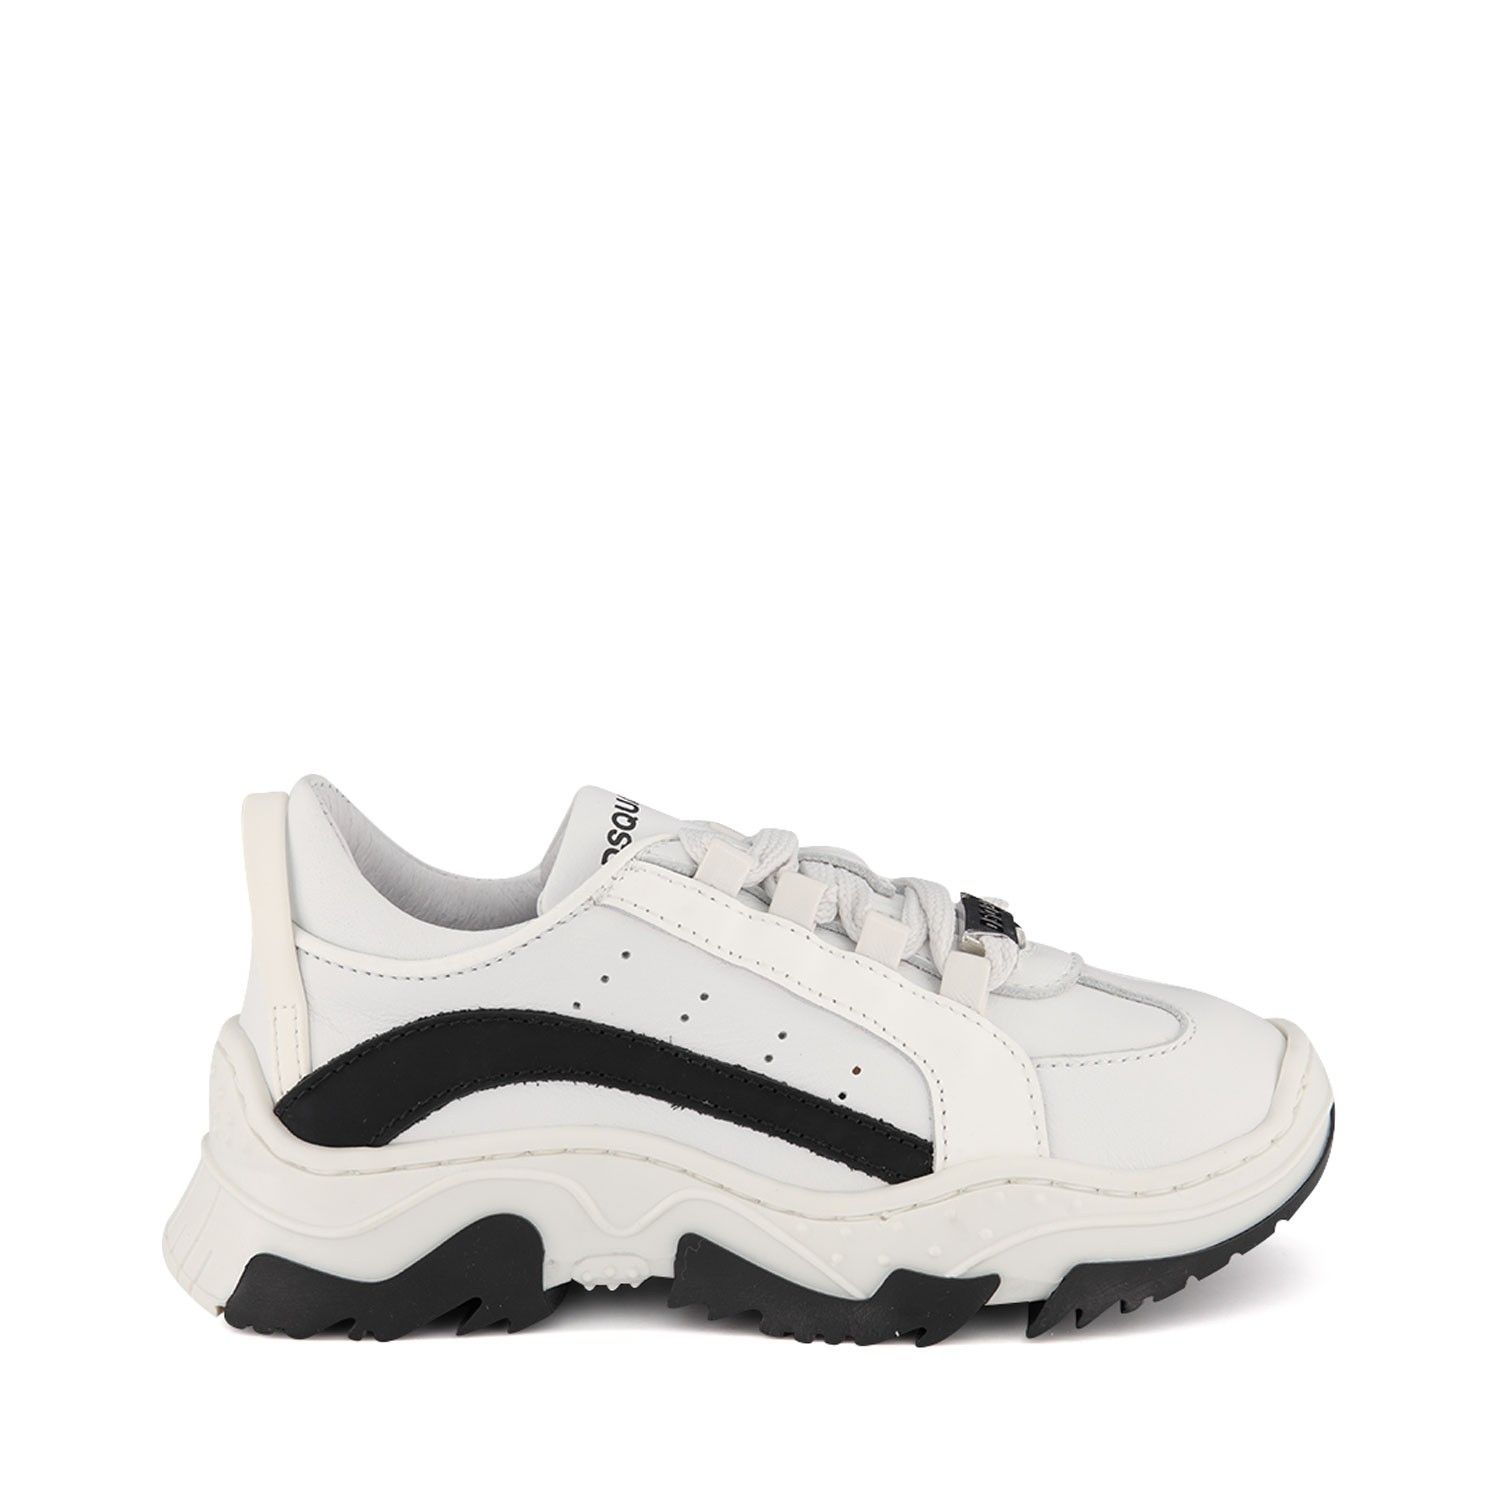 Picture of Dsquared2 63464 kids sneakers white